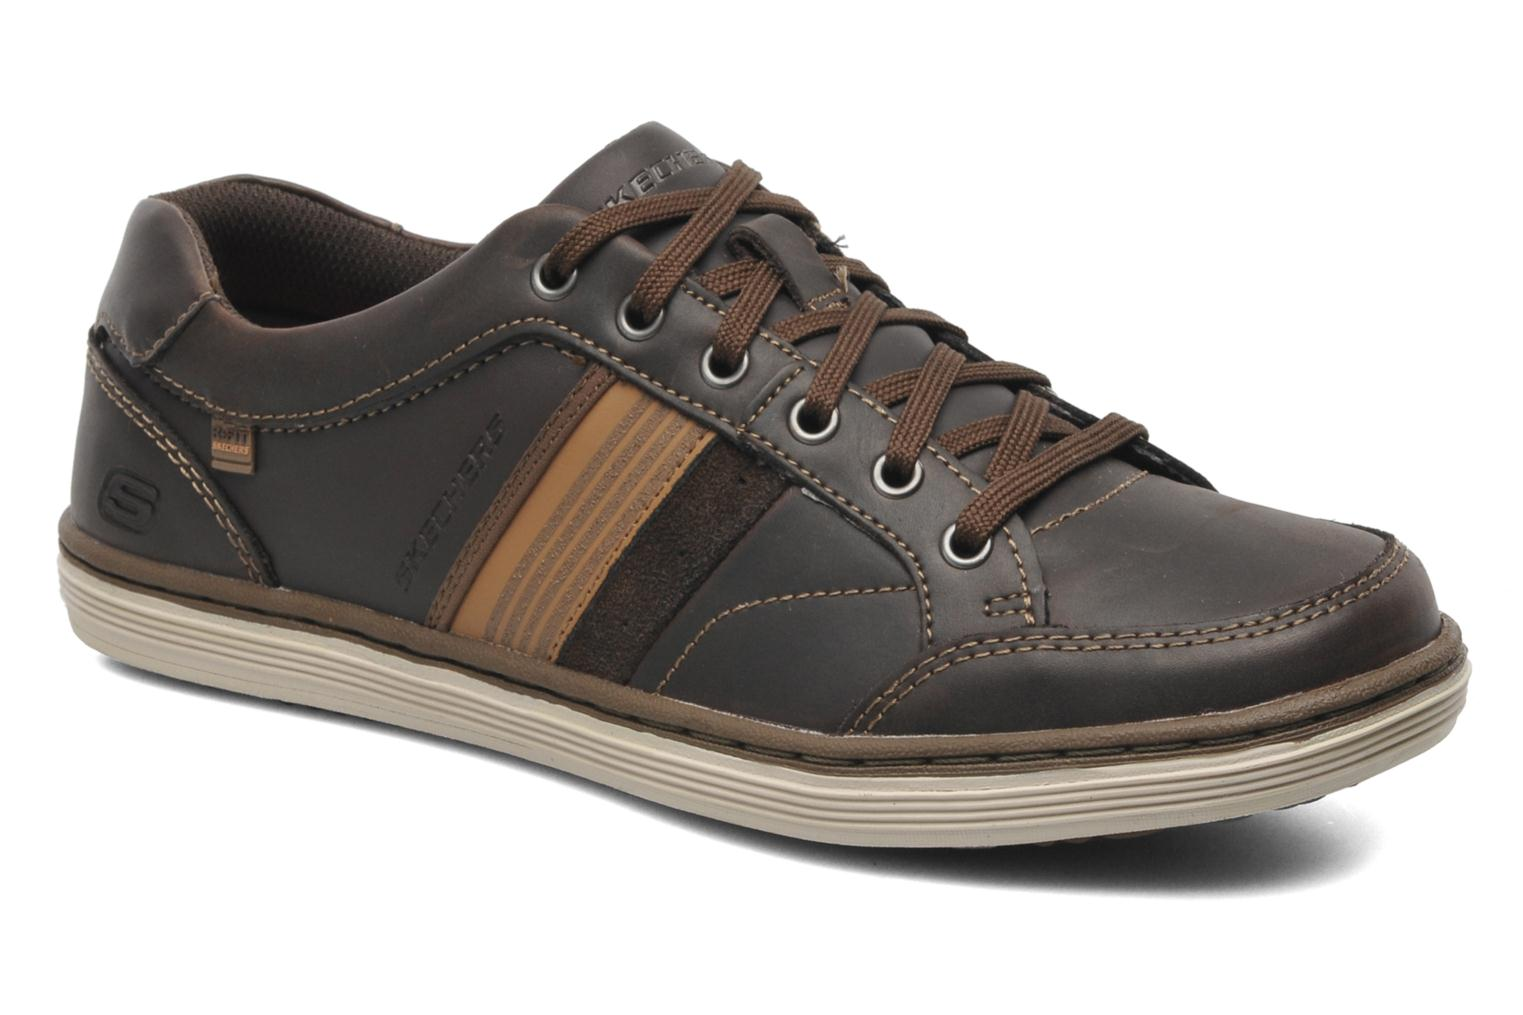 Sorino Duarte 64060 Brown